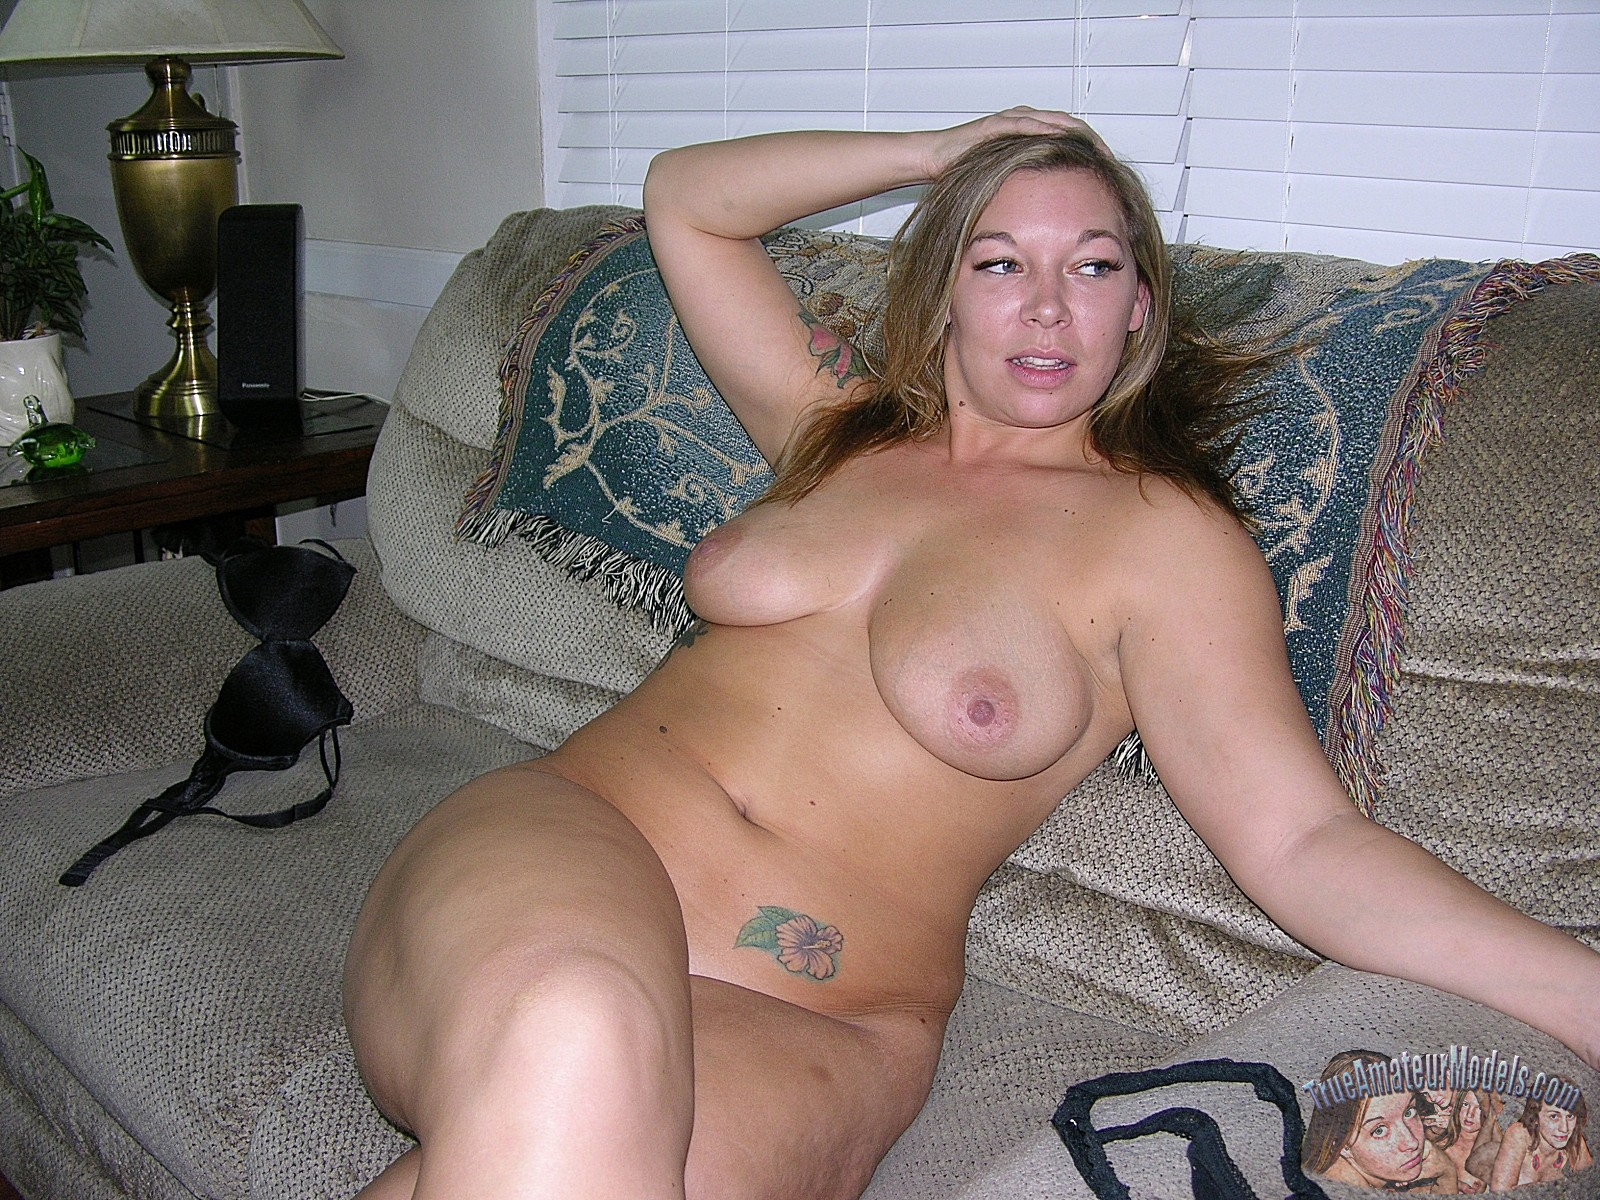 real latina moms naked pics